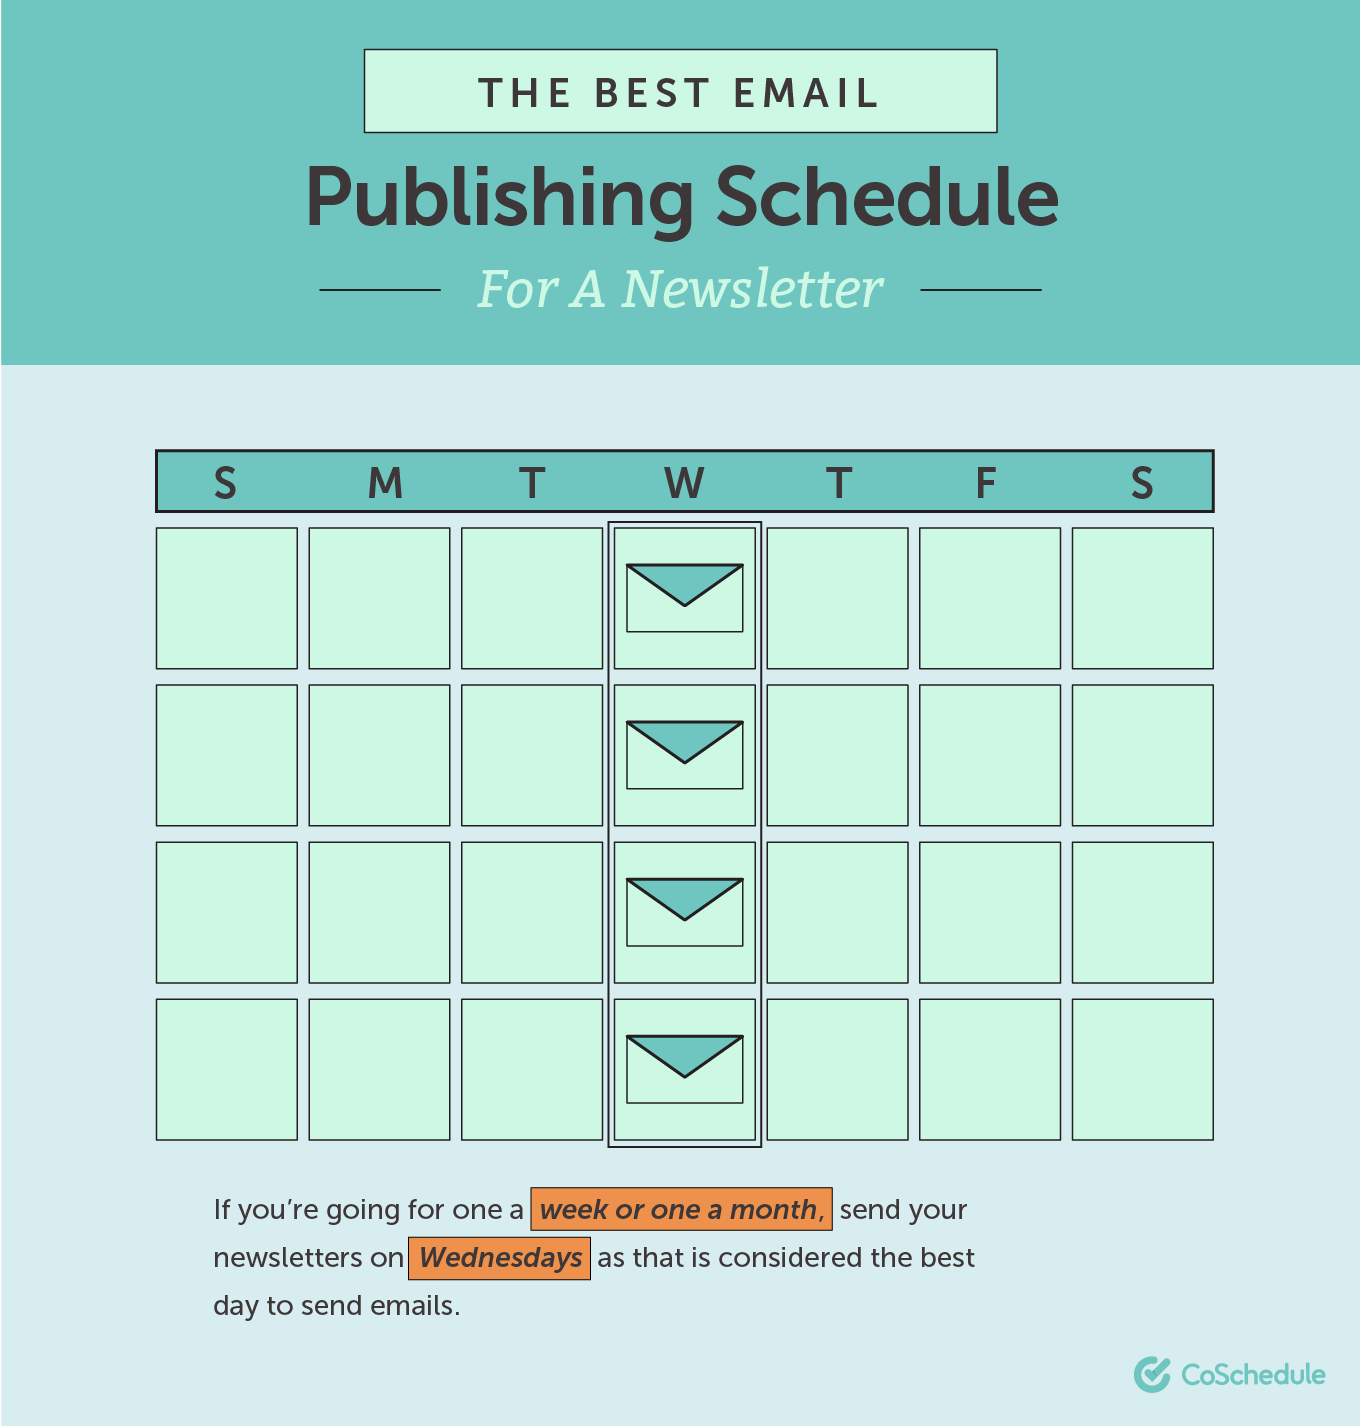 Best email publishing schedule for a newsletter